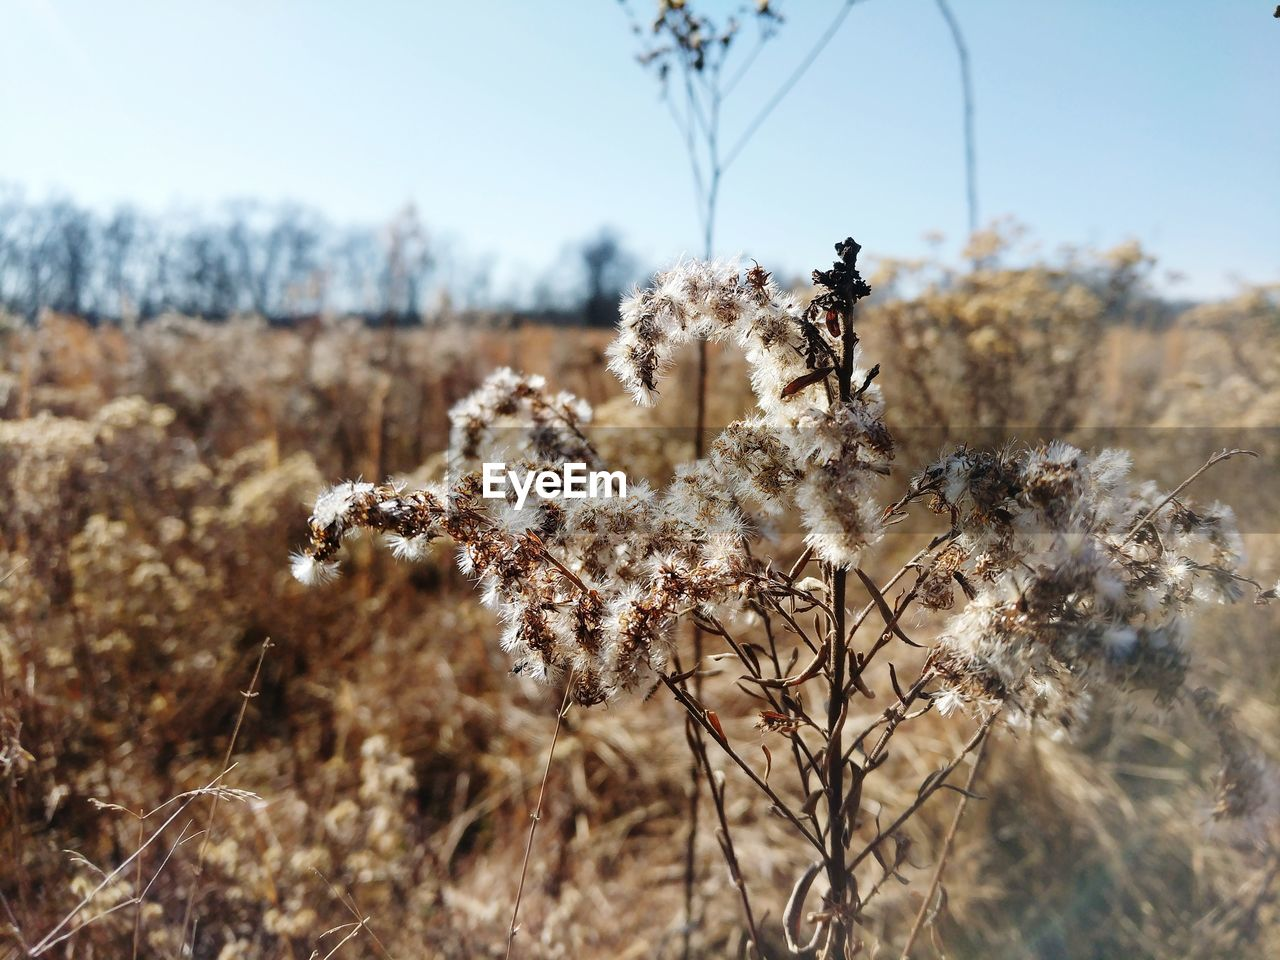 plant, day, flower, land, nature, field, flowering plant, no people, selective focus, fragility, focus on foreground, beauty in nature, tranquility, close-up, dry, vulnerability, growth, sky, sunlight, tree, outdoors, dead plant